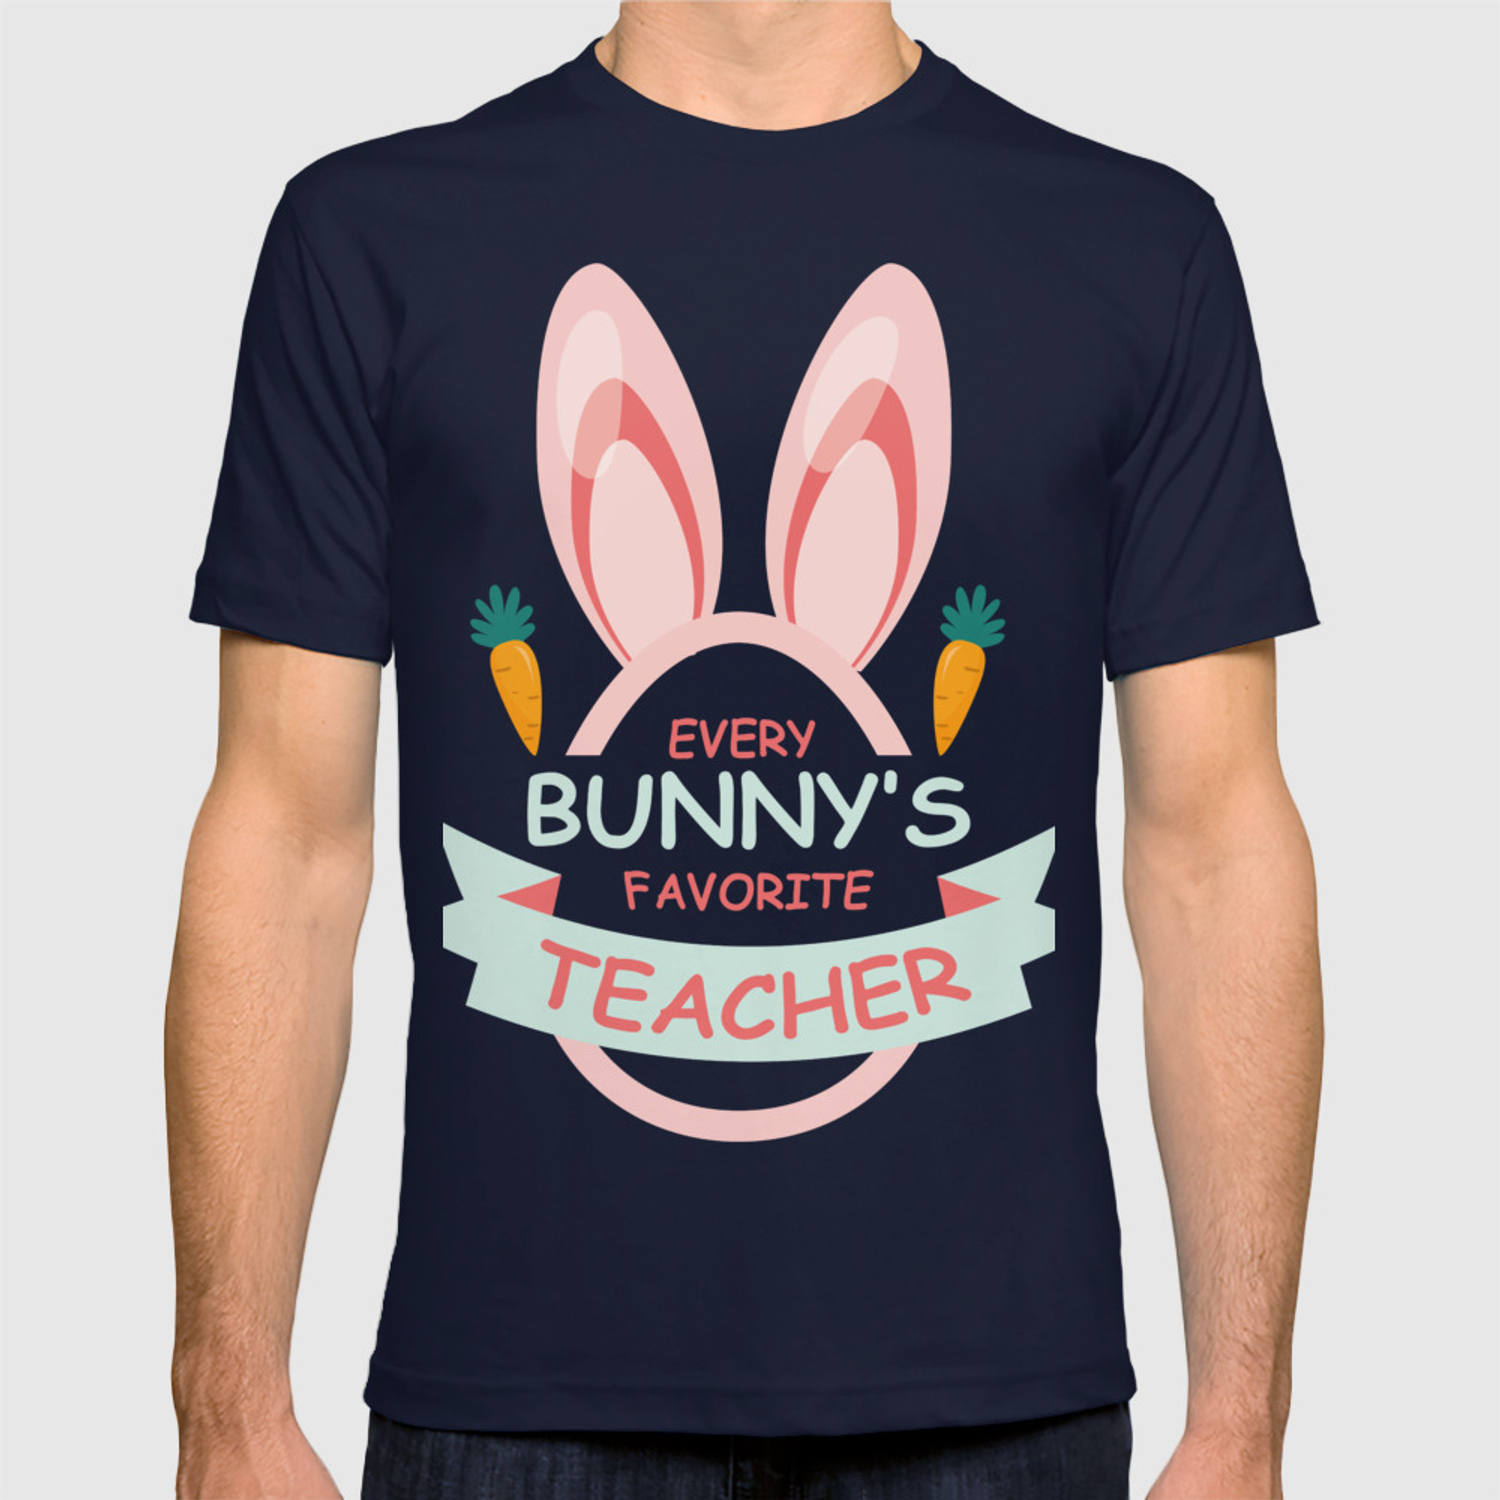 b49f67391df60 Every Bunny's Favorite Teacher Easter T-shirt